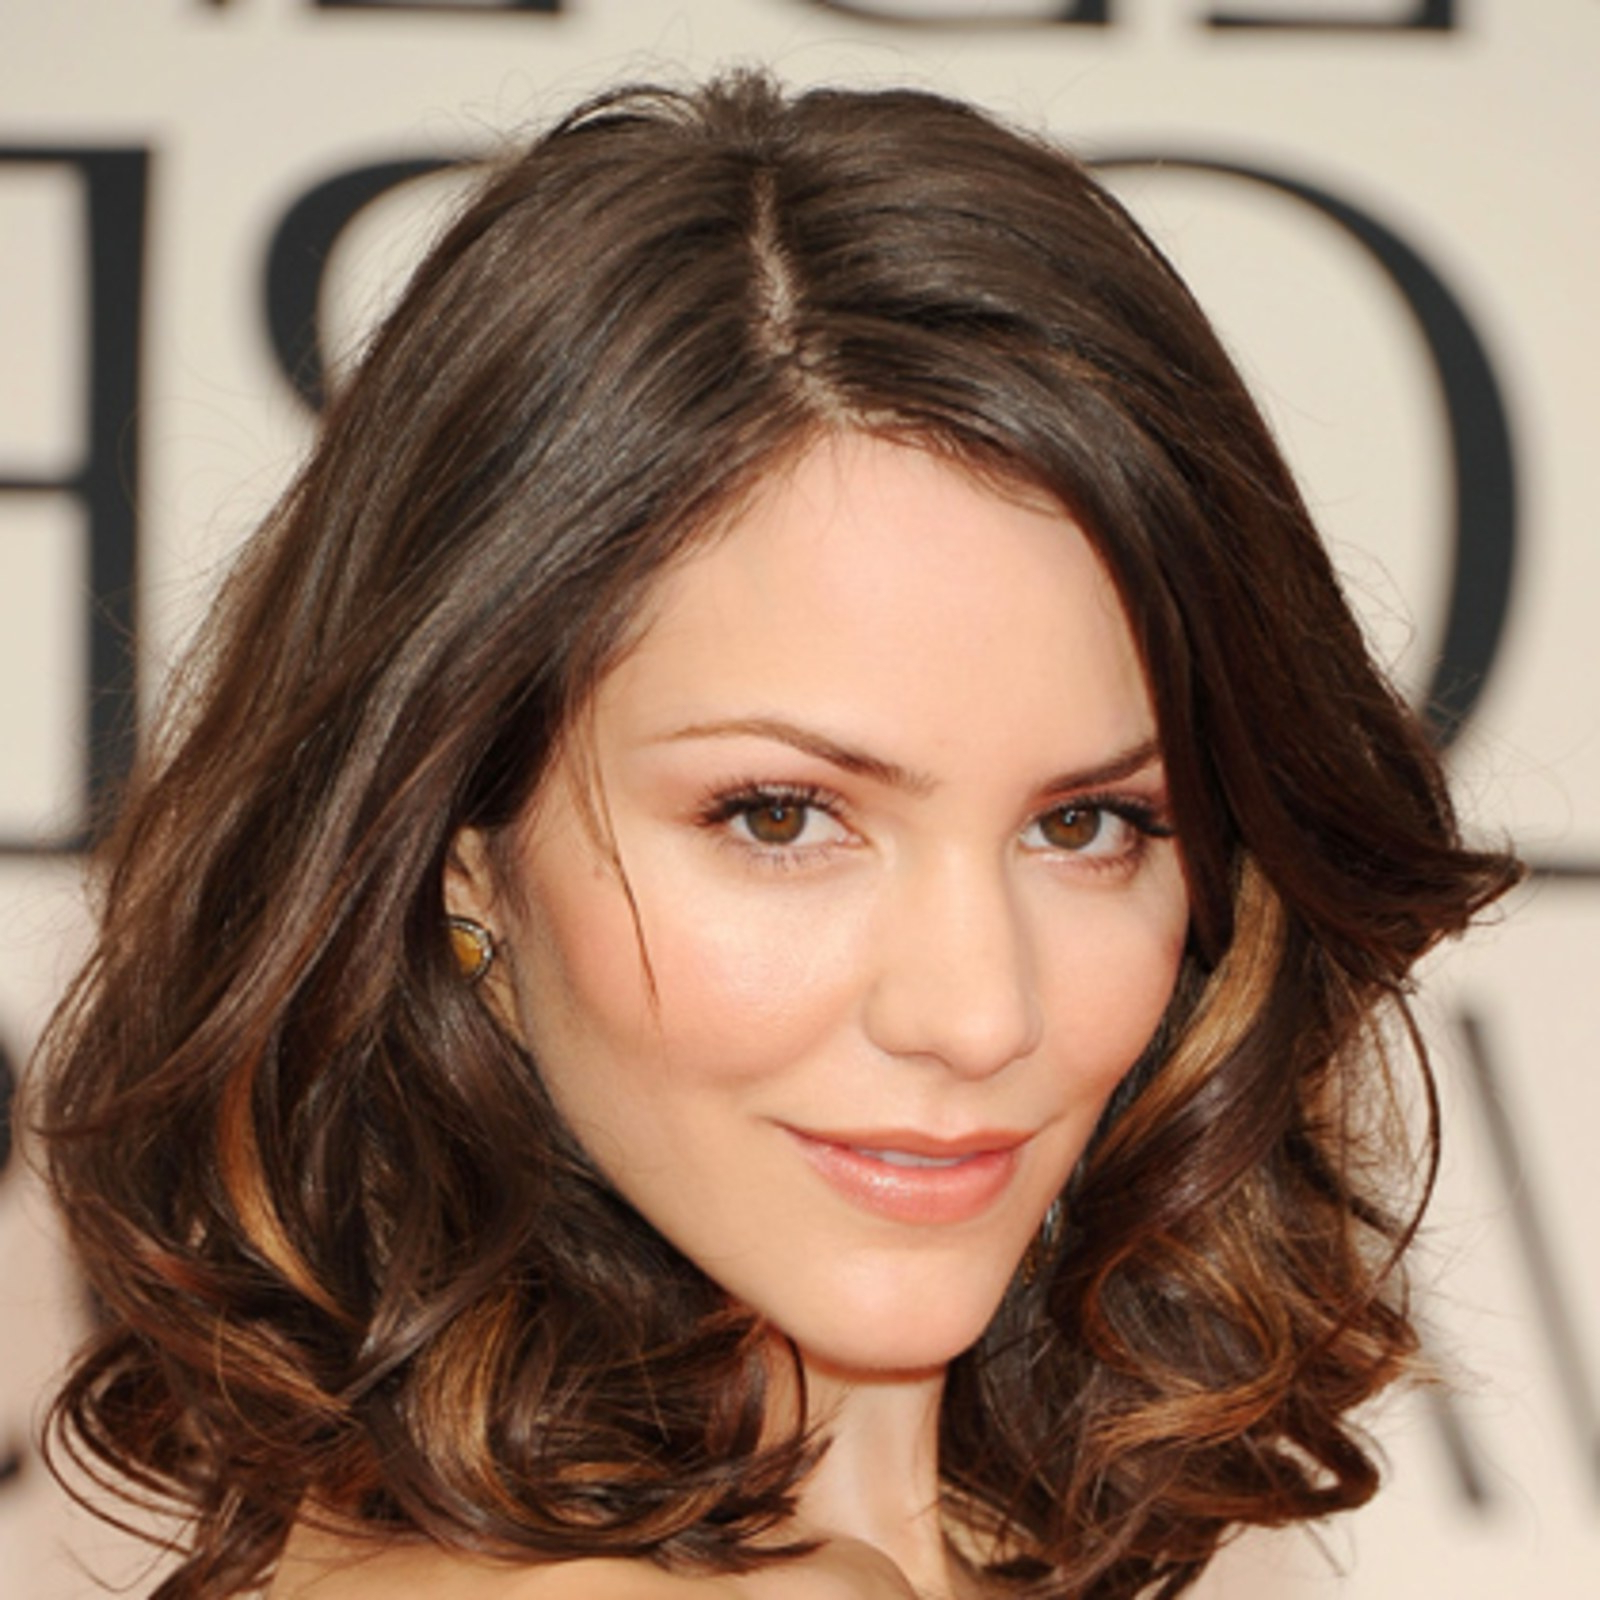 The Top 8 Haircuts For Heart Shaped Faces – Allure For Cute Short Haircuts For Heart Shaped Faces (View 22 of 25)